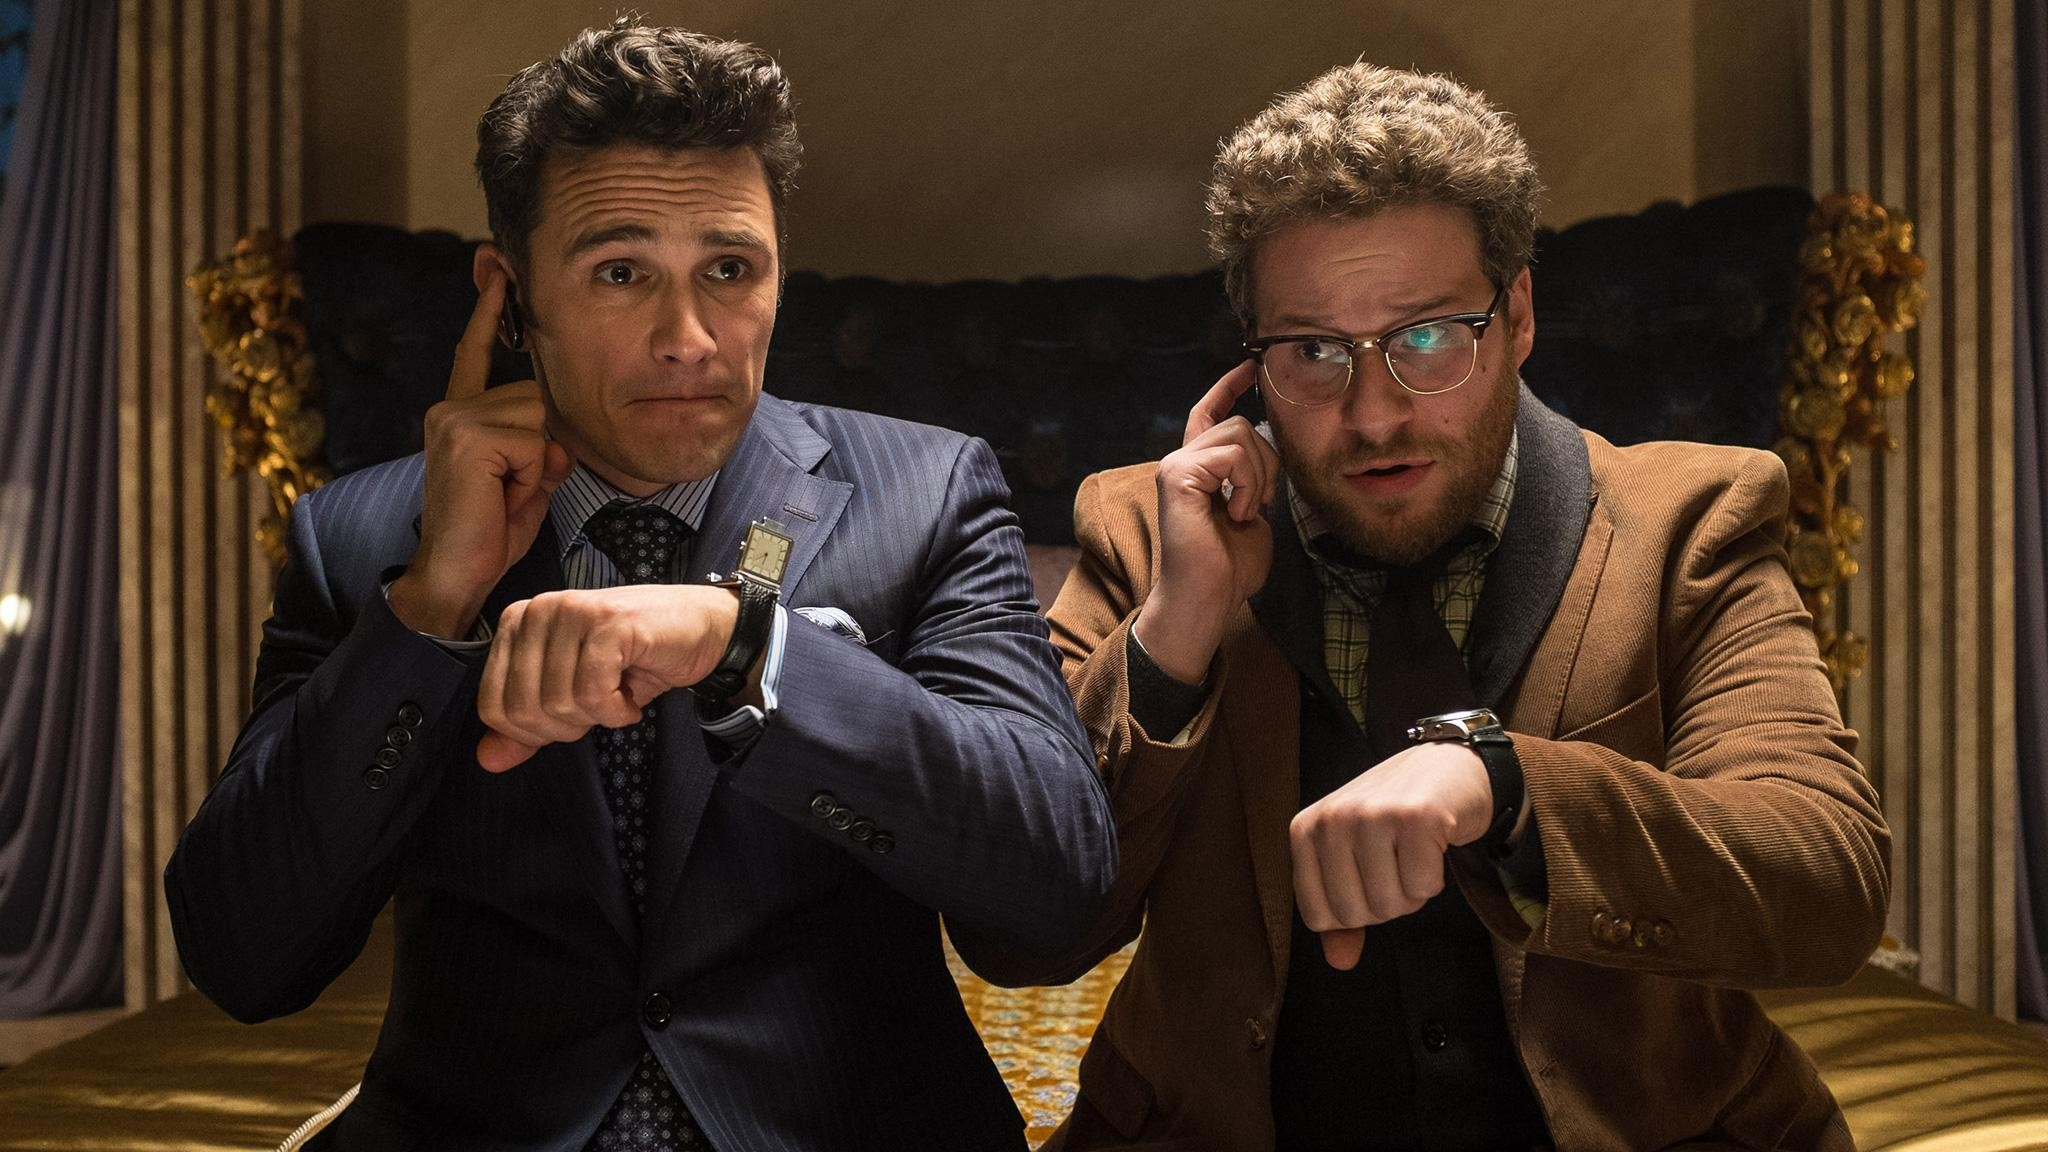 the-interview-2014-seth-rogen-james-franco